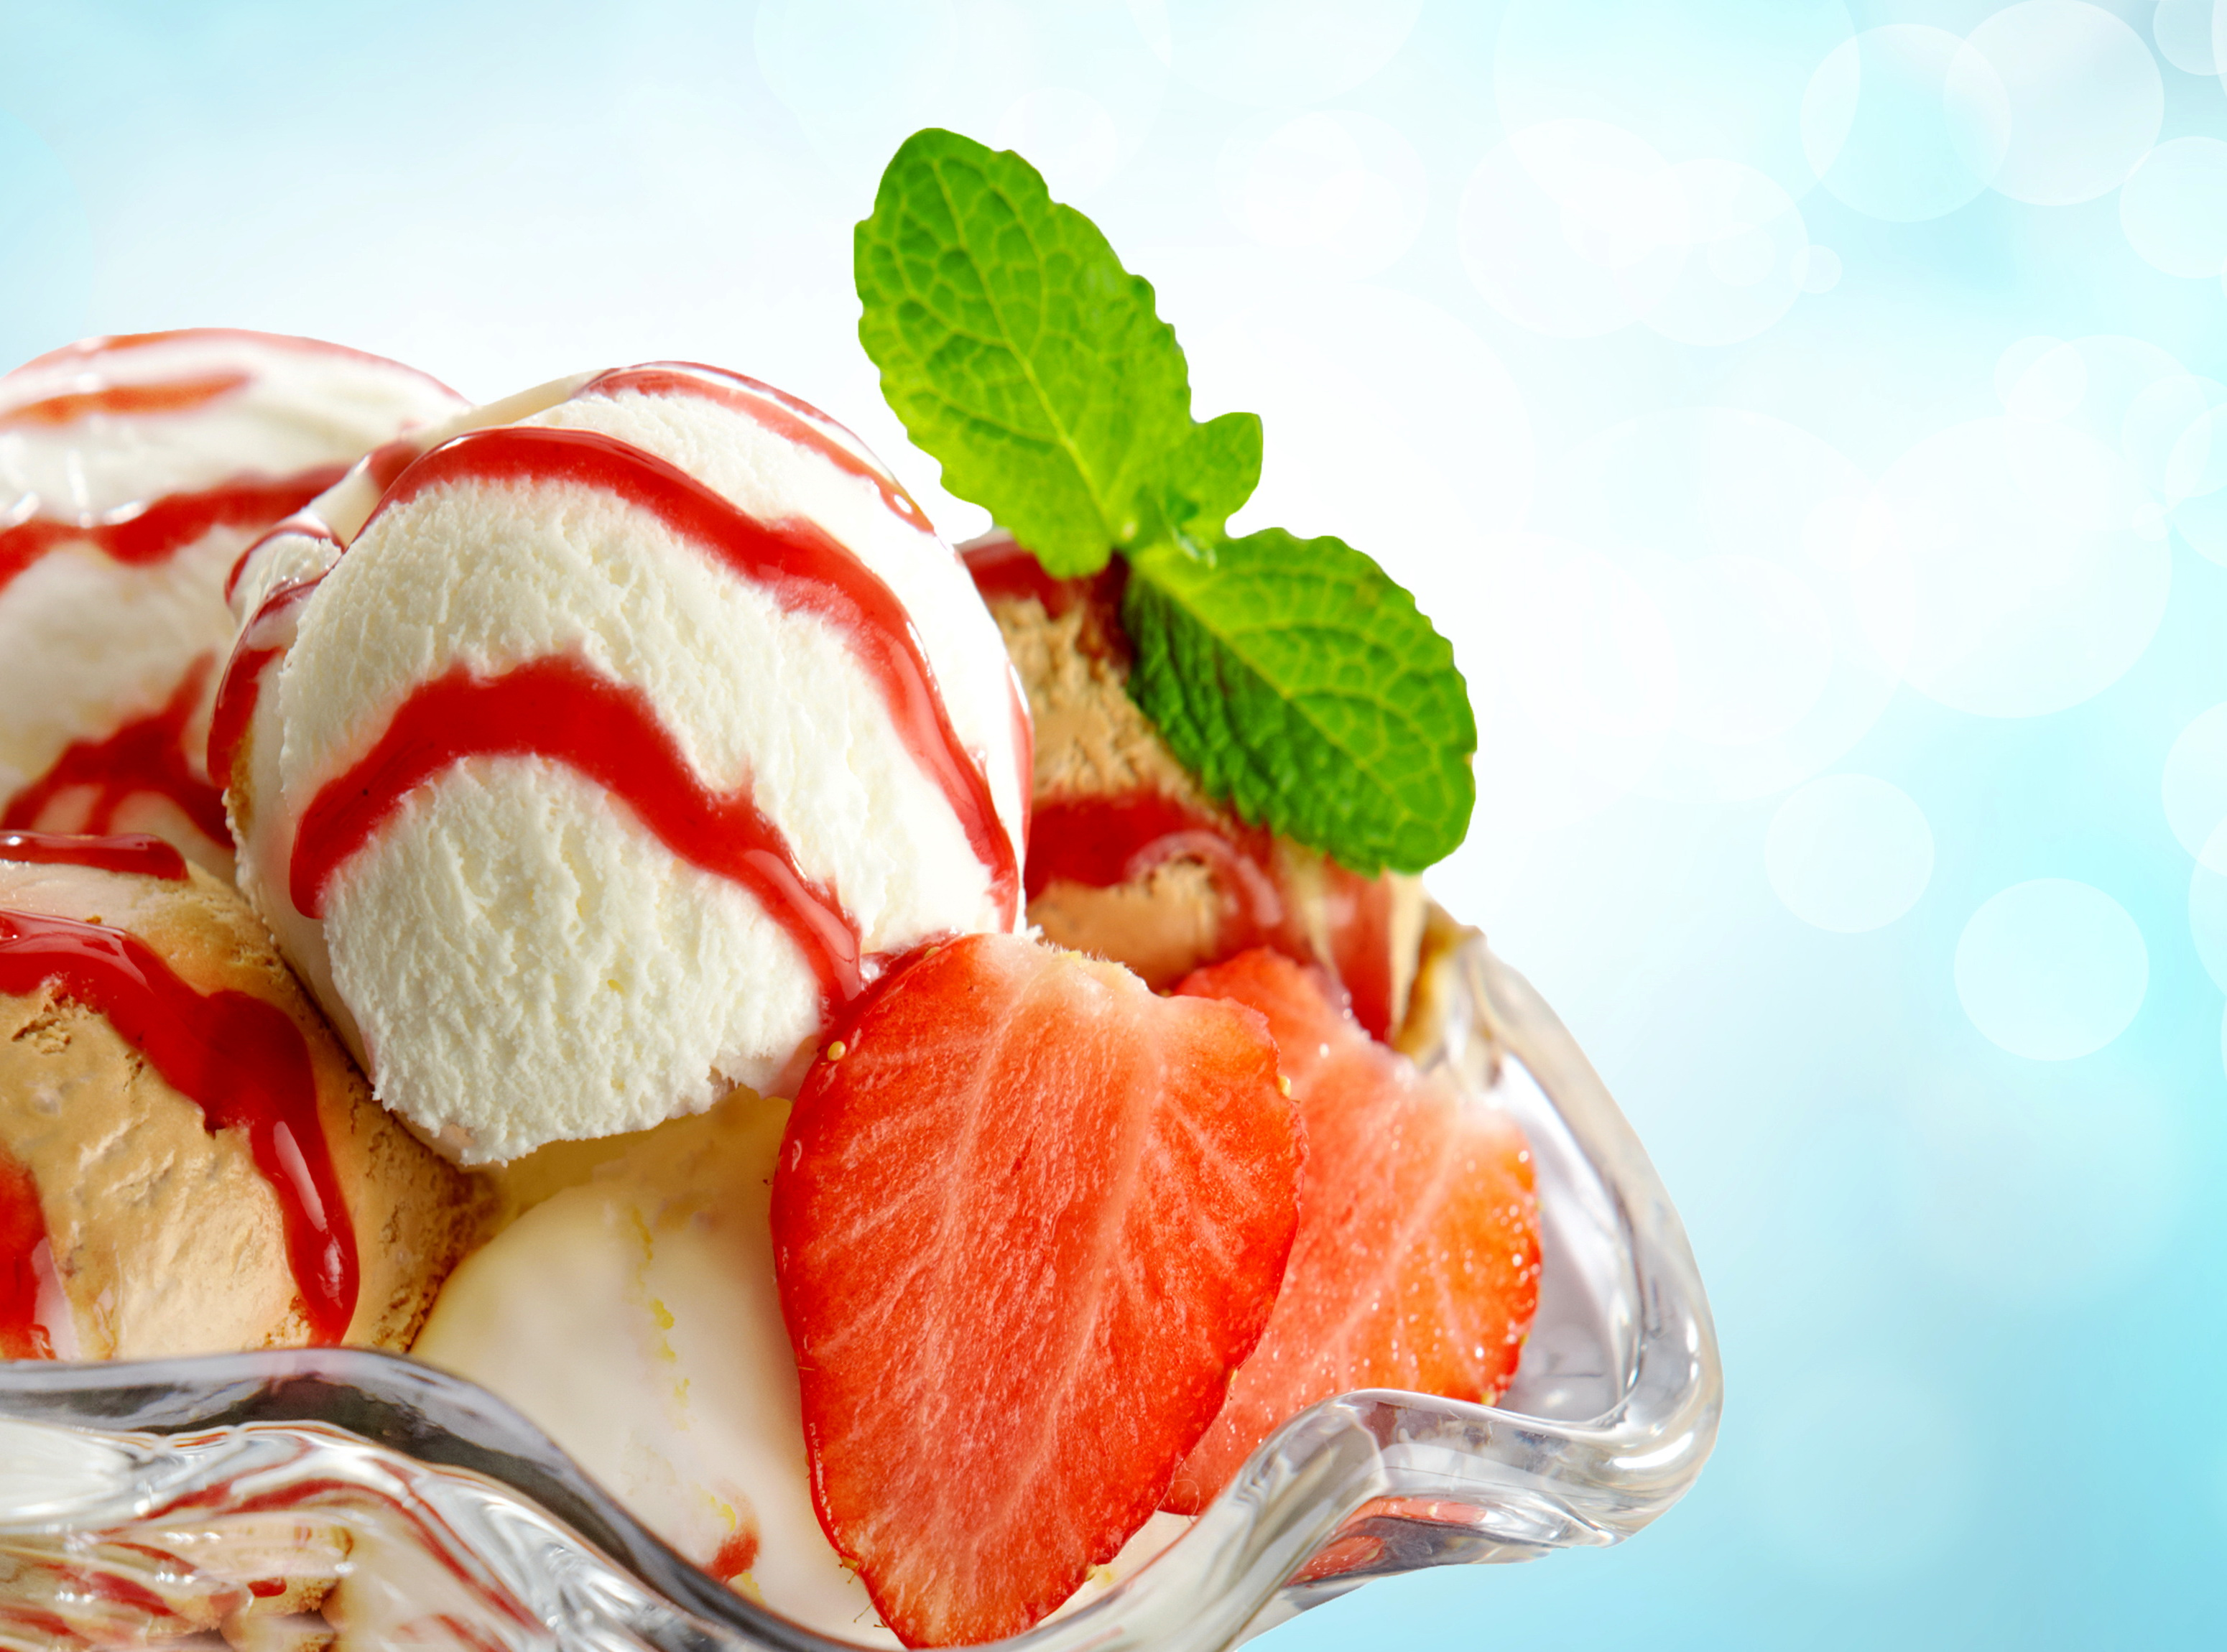 Amul Preferred IceCream Parlor for Sale @ Eminent Locality Attavar of Mangalore